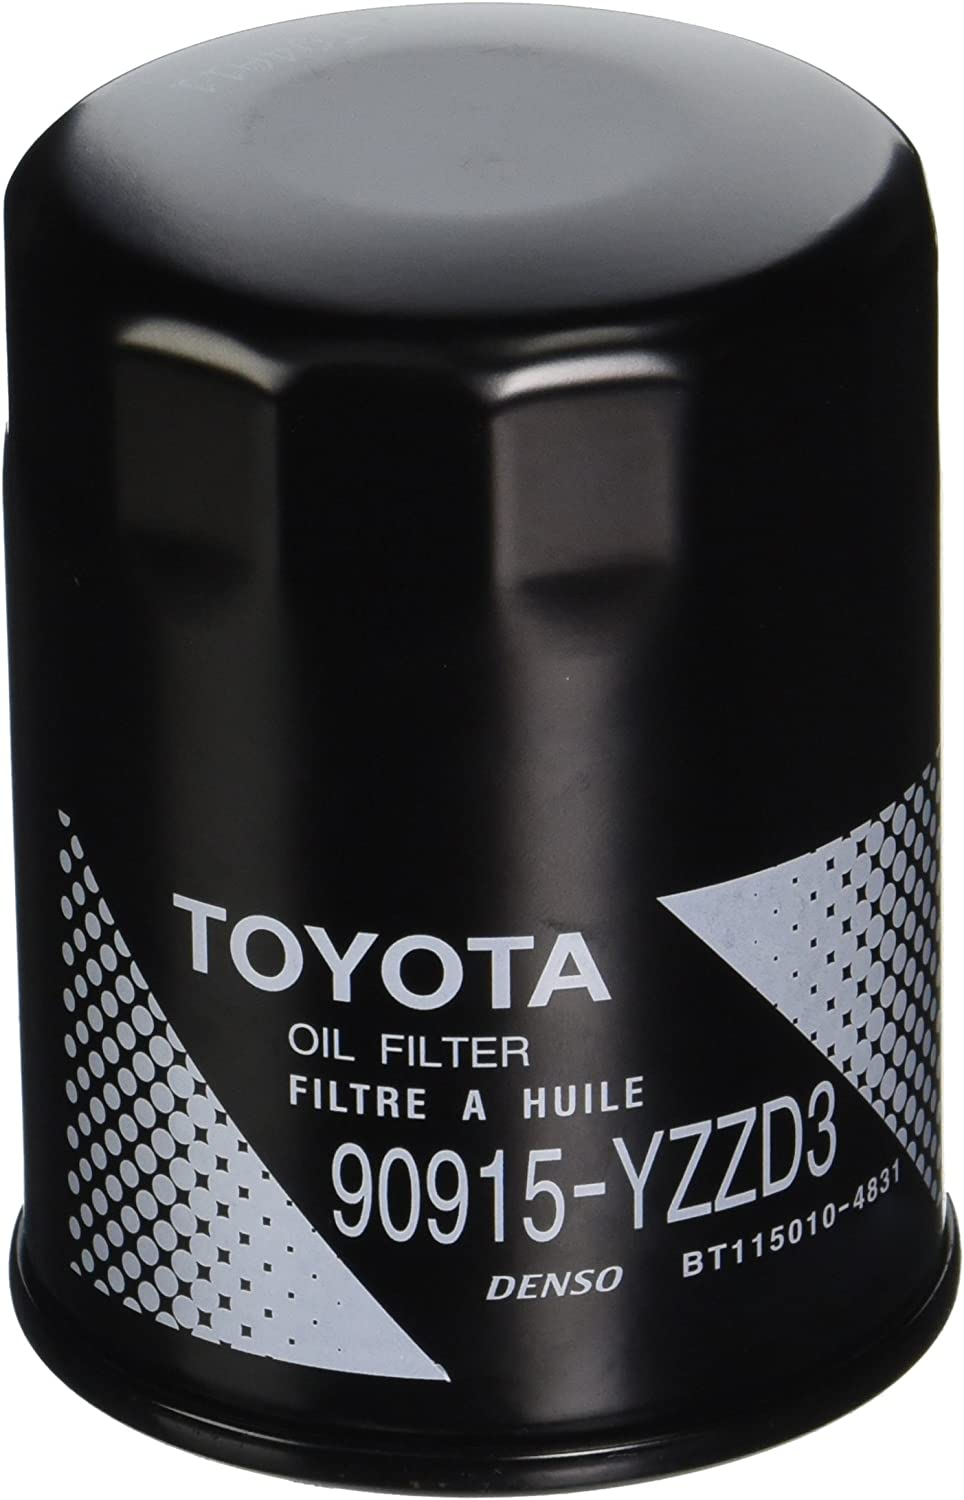 Toyota Oil Filter 3-Pack with Gaskets Genuine OE OEM 90915-YZZD3 /& 90430-12031